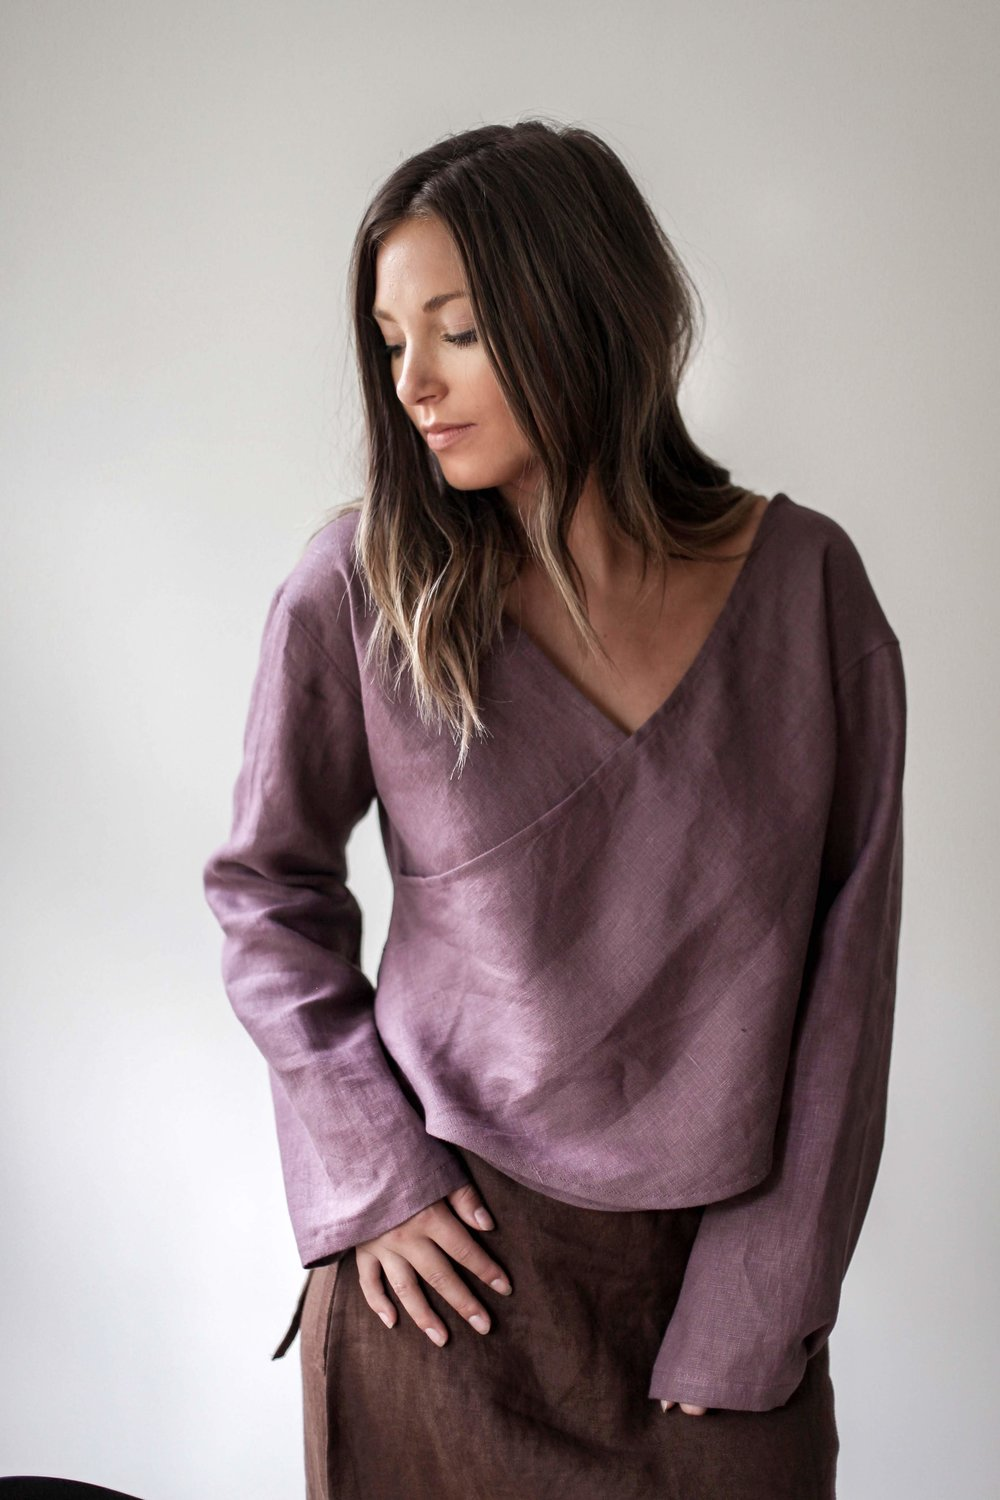 nomi-designs_taltal-top_plum-colored-linen-long-sleeve-reversible-top_front-detail.jpg